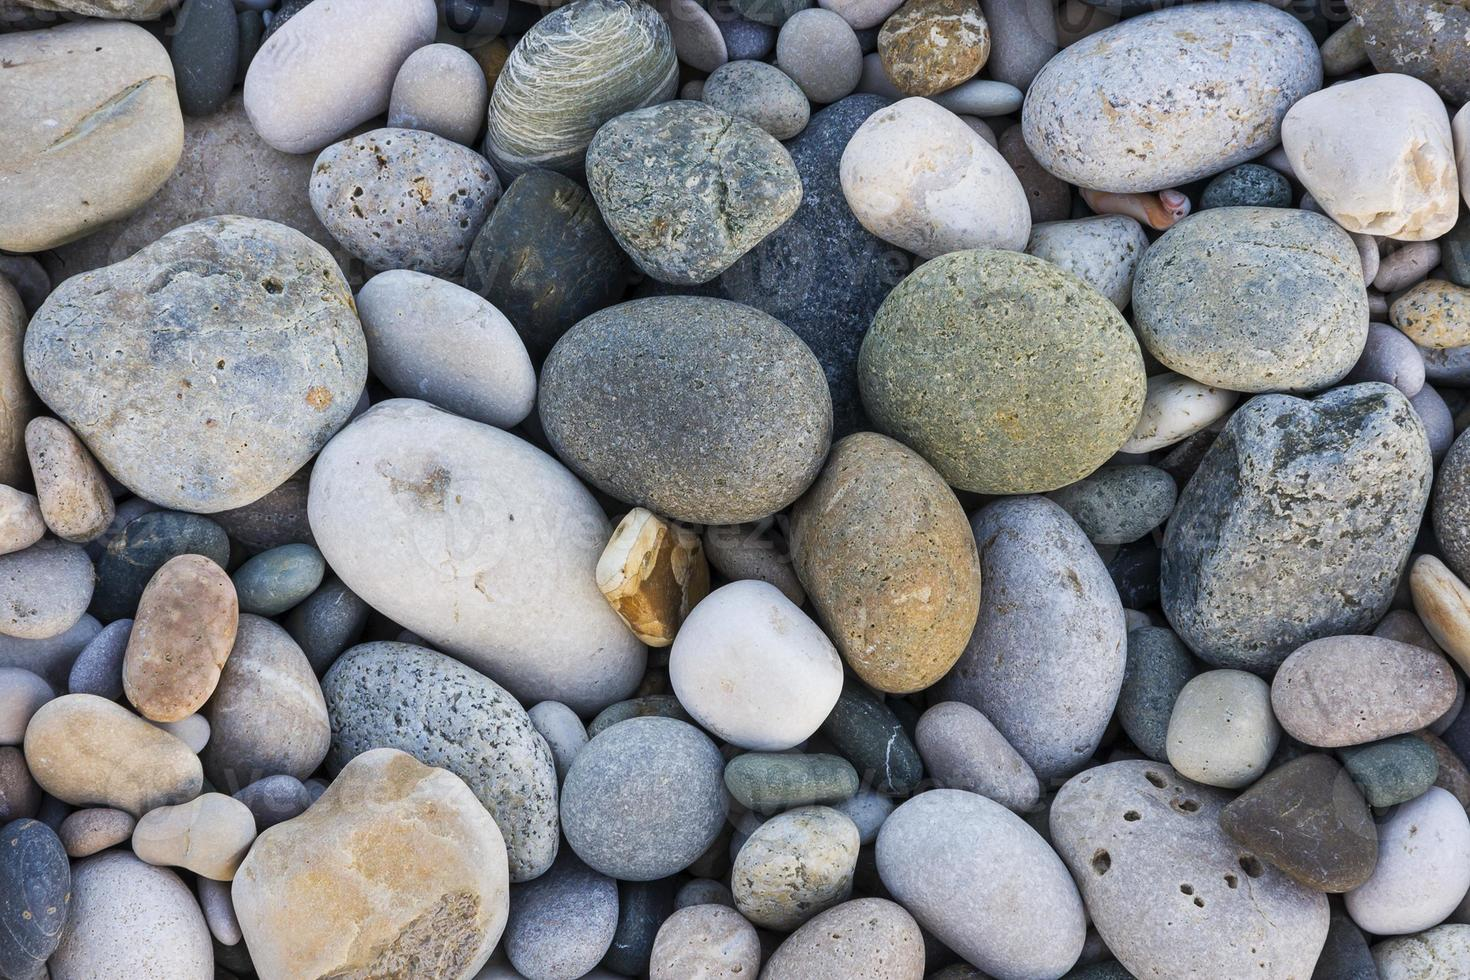 texture of the pebbles photo